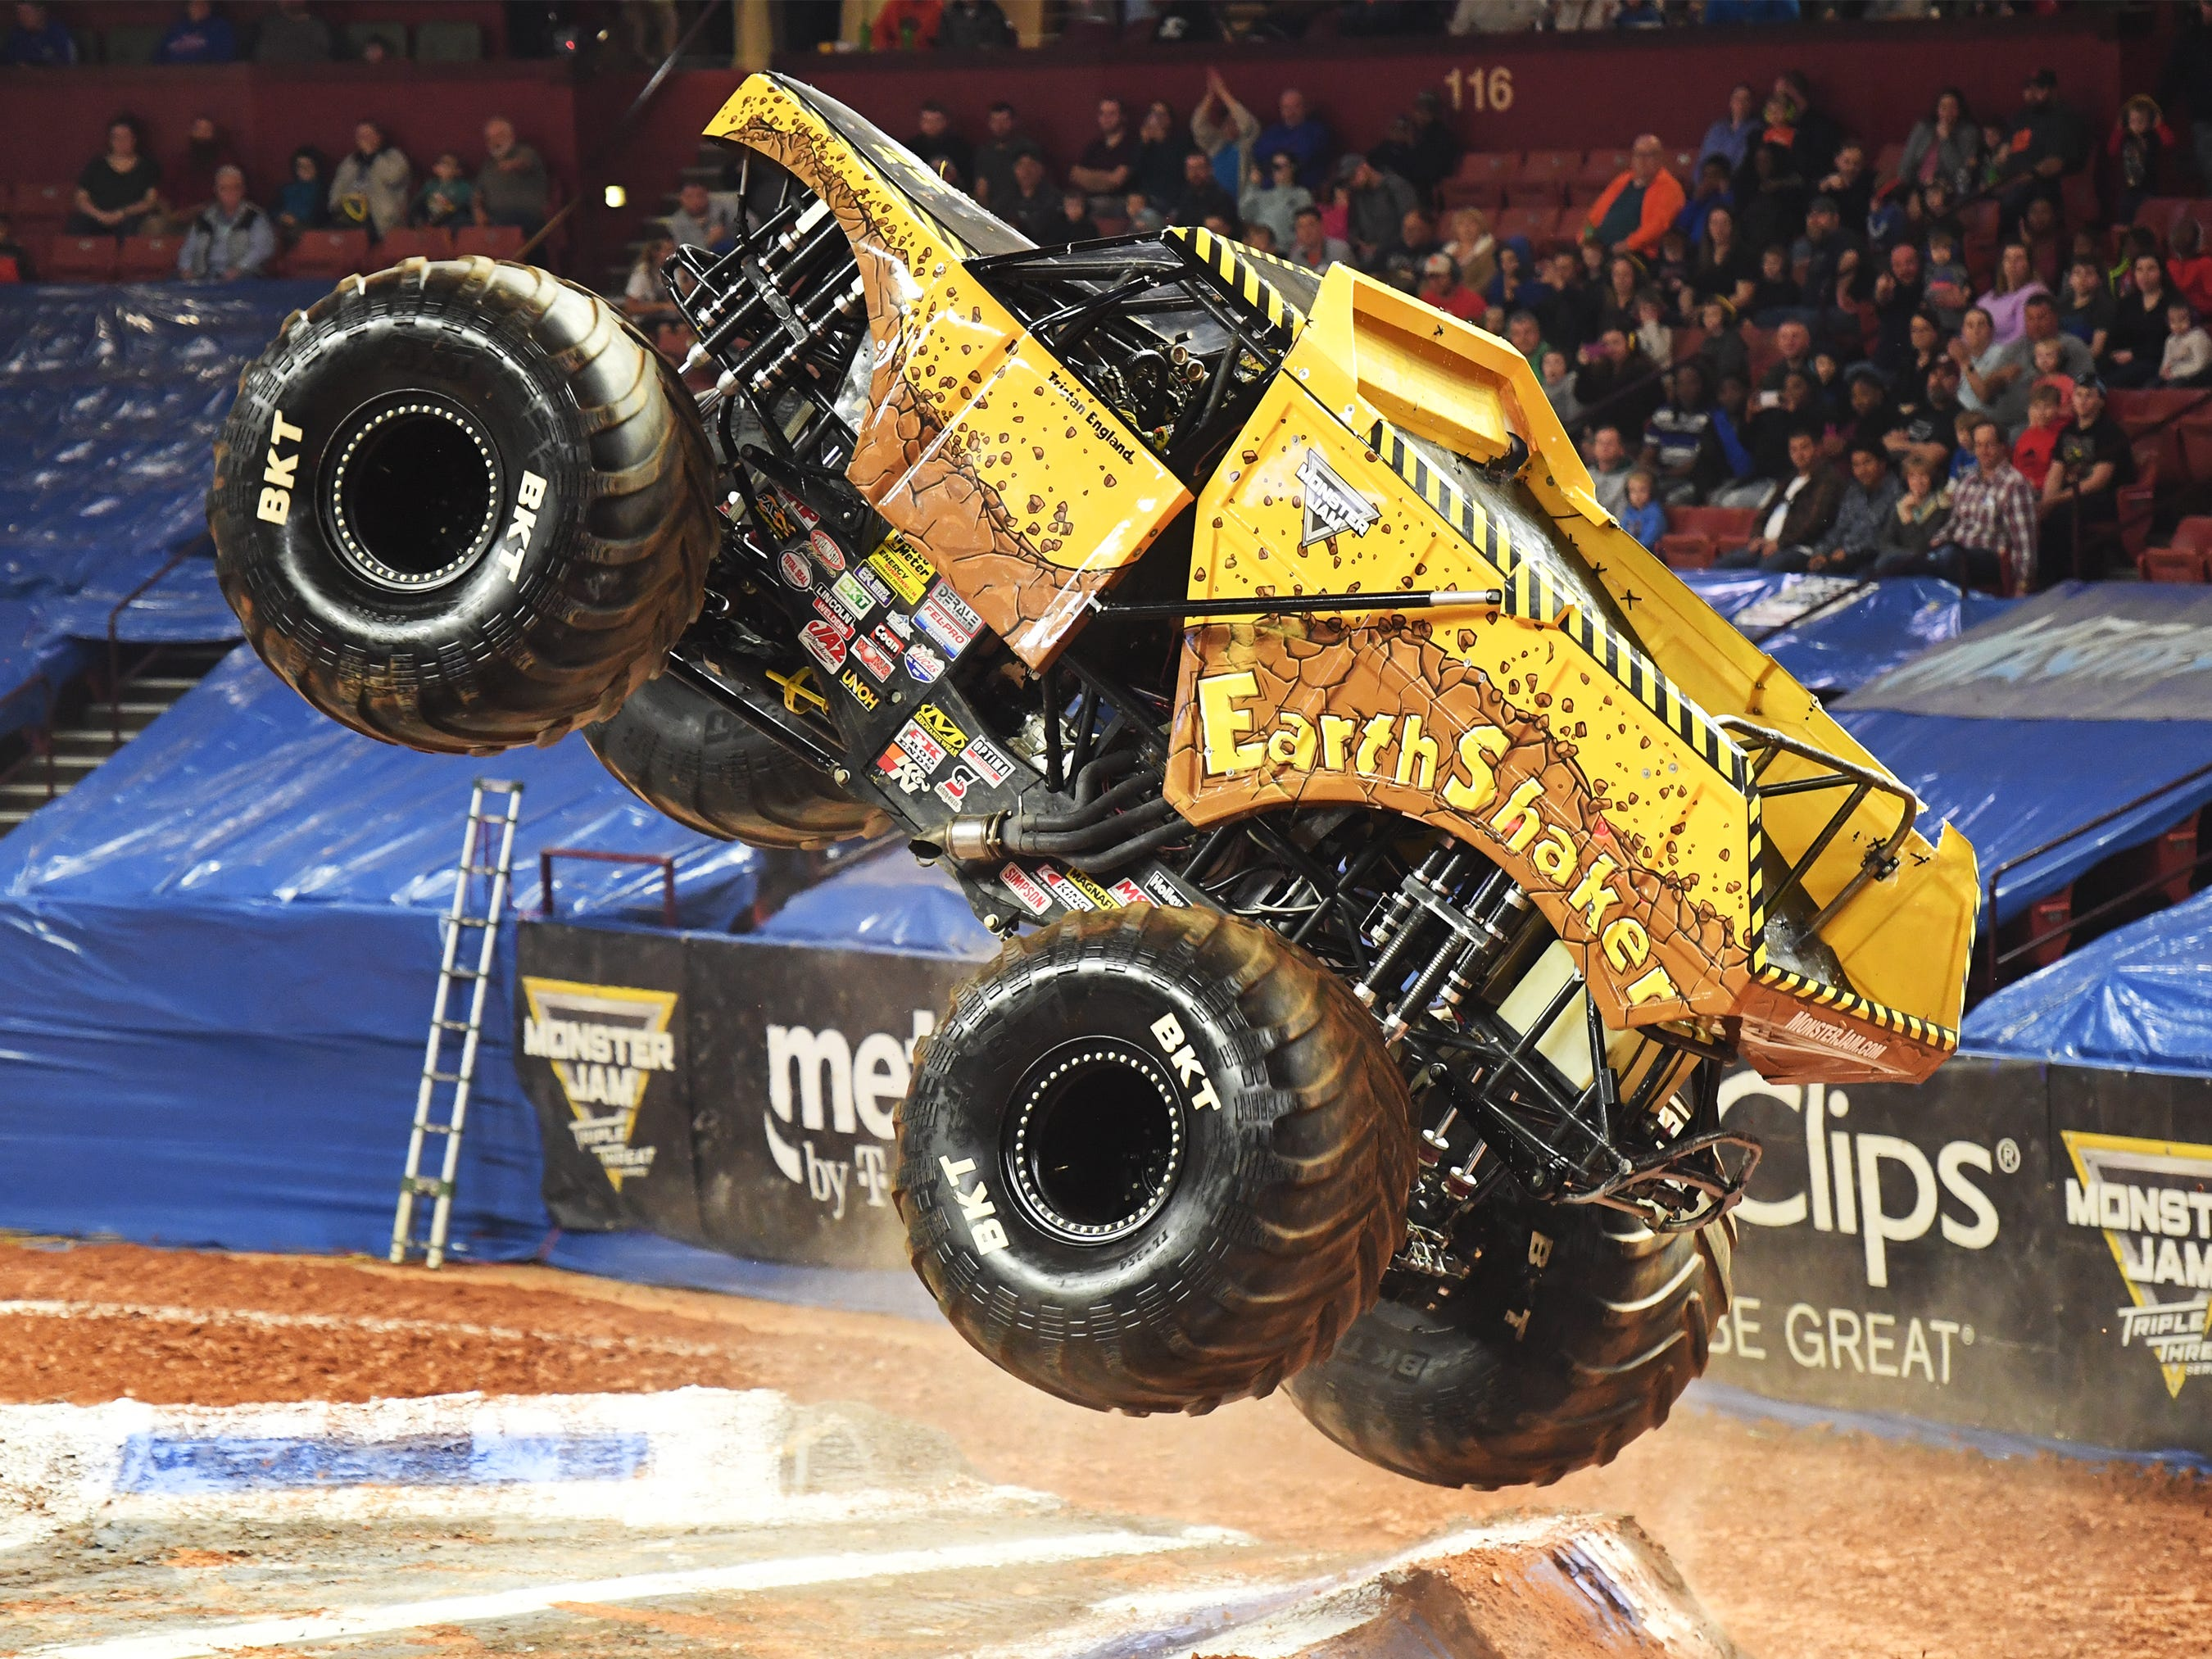 Tristan England celebrates winning the first race while driving the Earth Shaker at Monster Jam at Bon Secours Wellness Arena Friday, Feb. 8, 2019.